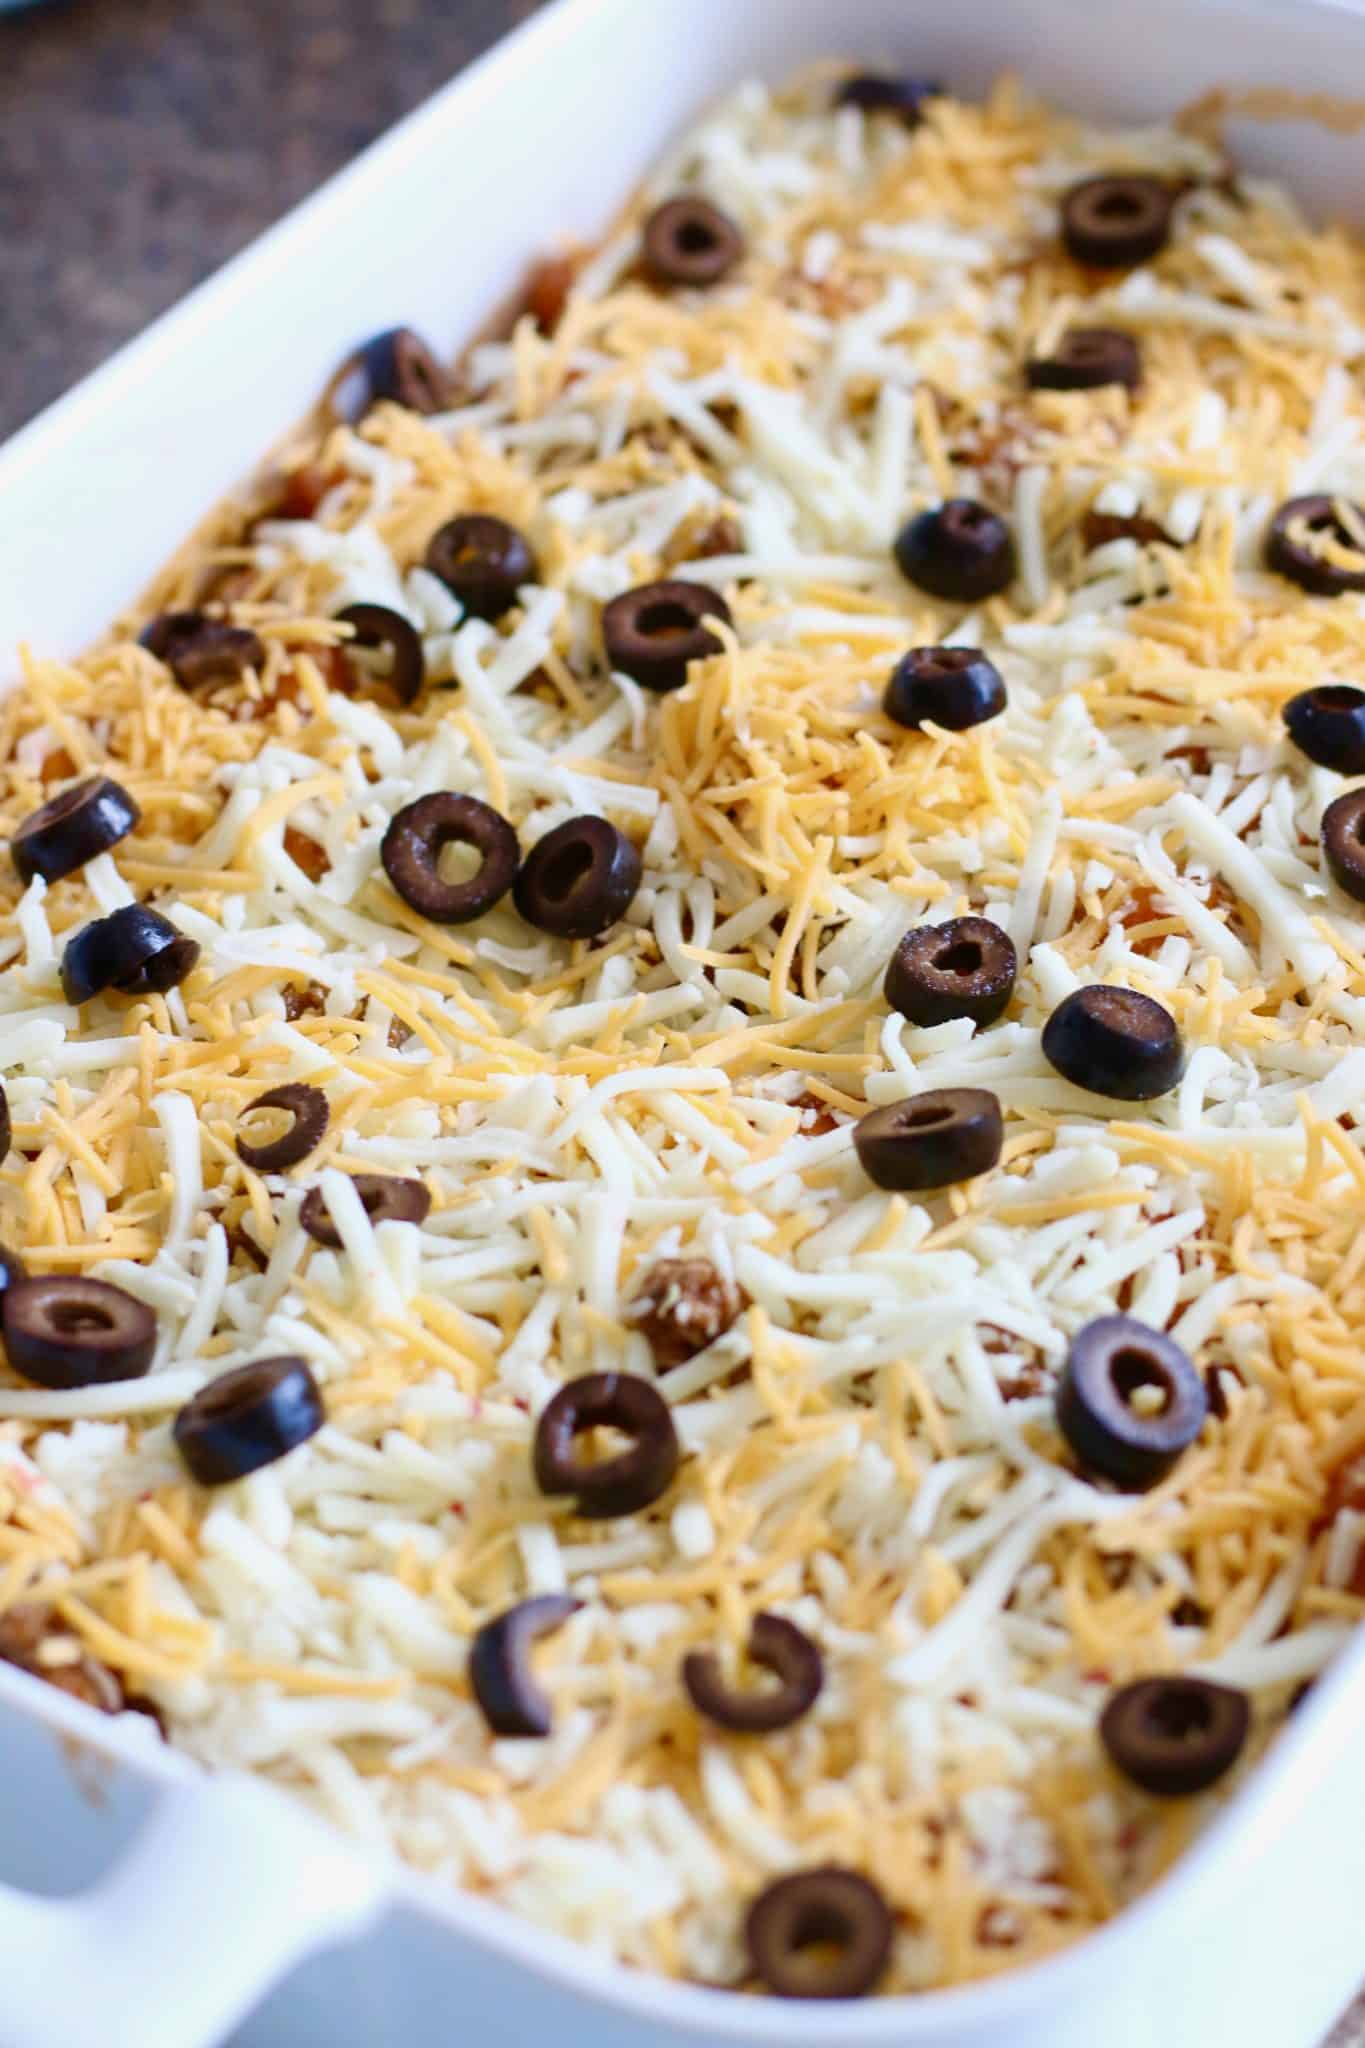 shredded cheese and sliced olives topping enchilada casserole.